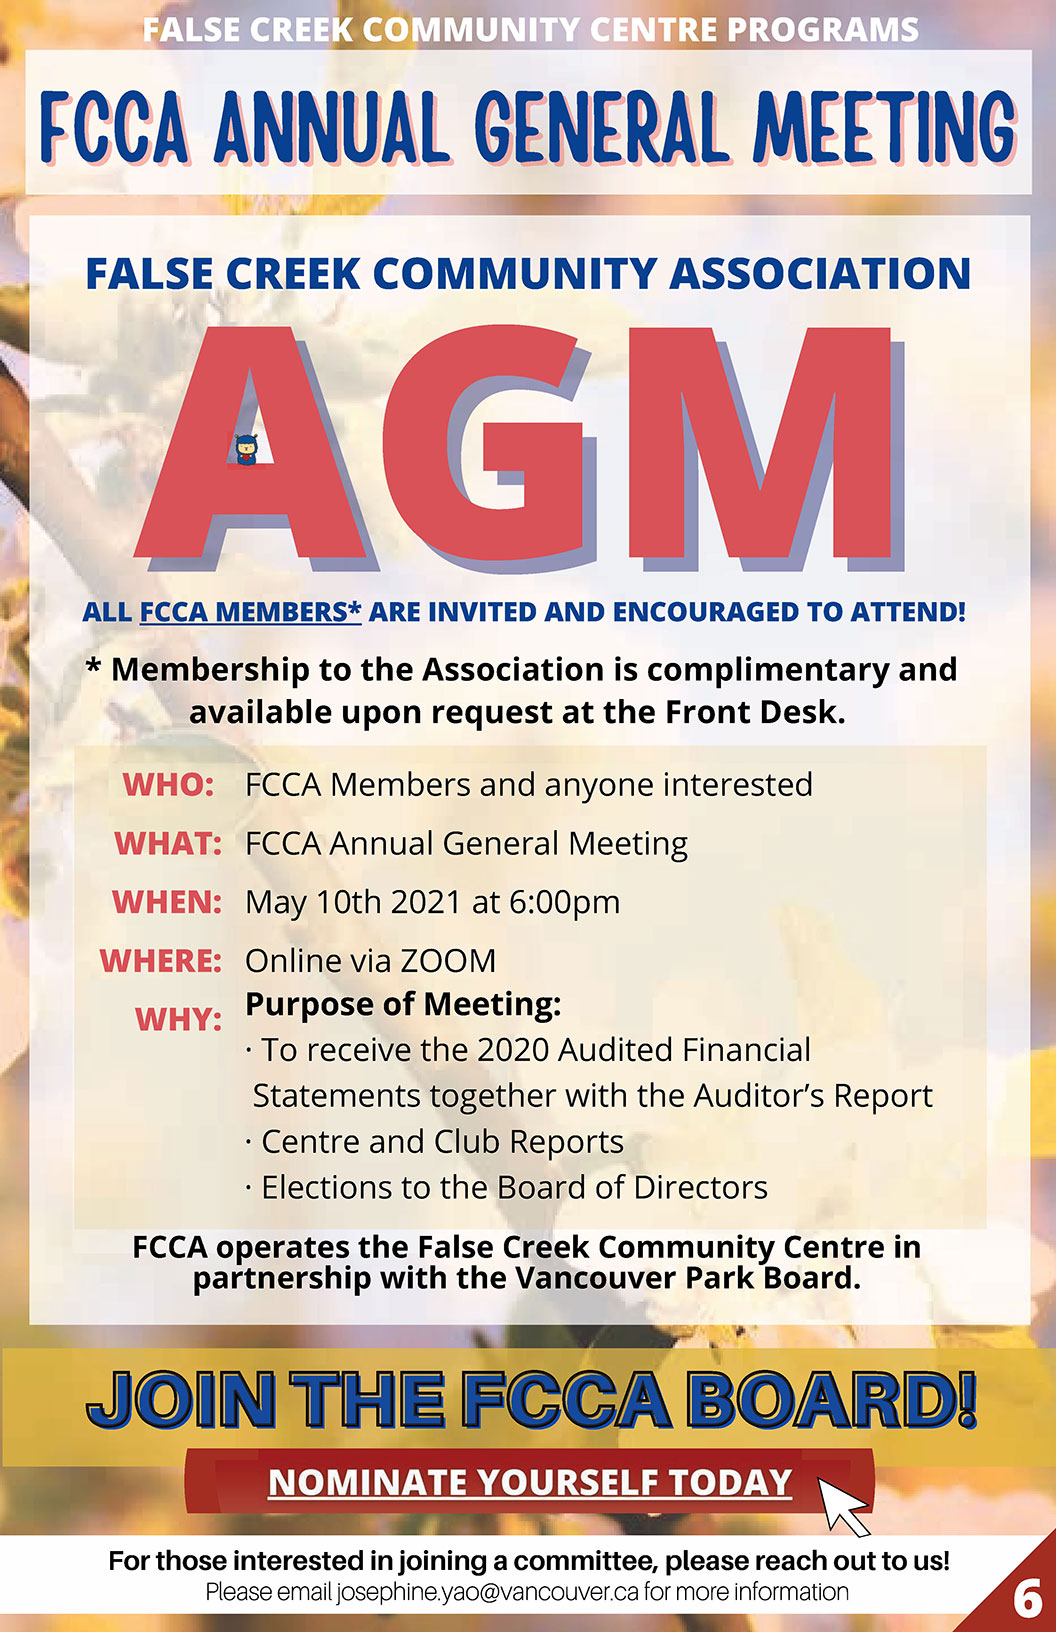 ALL FCCA MEMBERS* ARE INVITED AND ENCOURAGED TO ATTEND! FCCA operates the False Creek Community Centre in partnership with the Vancouver Park Board. * Membership to the Association is complimentary and available upon request at the Front Desk. WHO: FCCA Members and anyone interested WHAT: FCCA Annual General Meeting WHEN: May 10th 2021 at 6:00pm WHERE: Online via ZOOM WHY: Purpose of Meeting: · To receive the 2020 Audited Financial Statements together with the Auditor's Report · Centre and Club Reports · Elections to the Board of Directors FCCA operates the False Creek Community Centre in partnership with the Vancouver Park Board. For those interested in joining a committee, please reach out to us! Fill in your nomination application here Questions, please contact email joesphine.yao@vancouver.ca